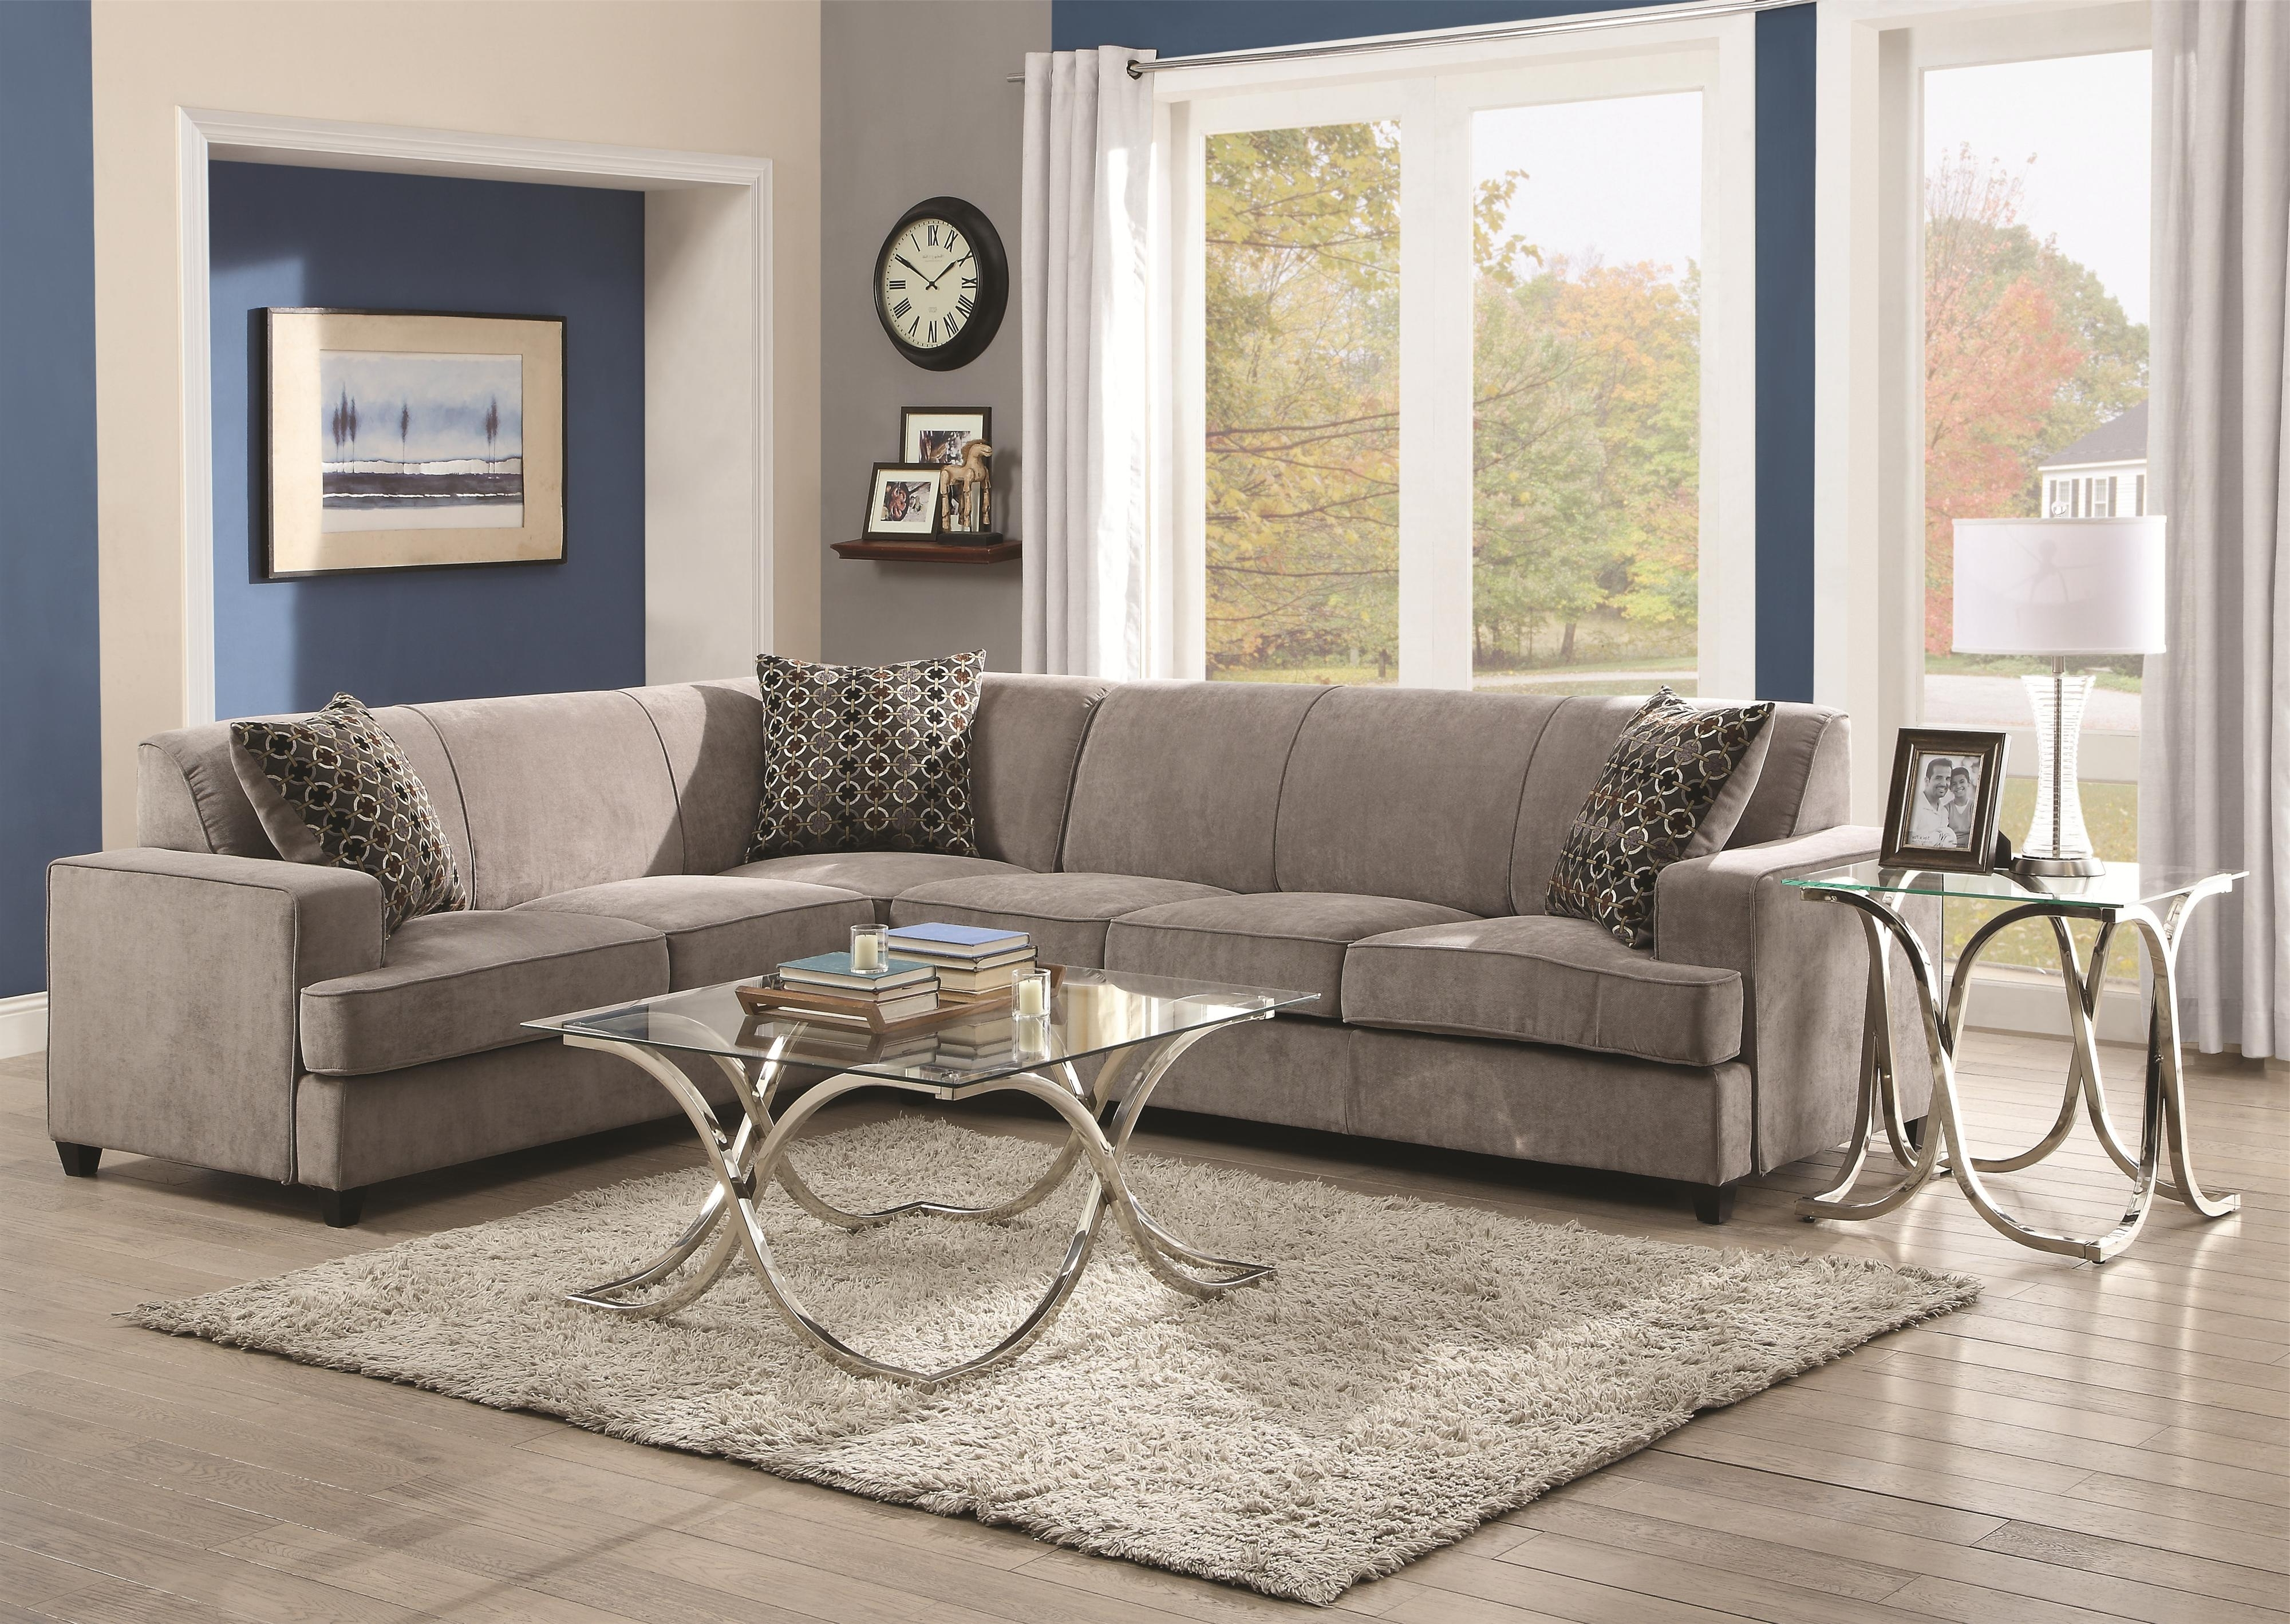 Value City Furniture With Regard To East Bay Sectional Sofas (View 18 of 20)